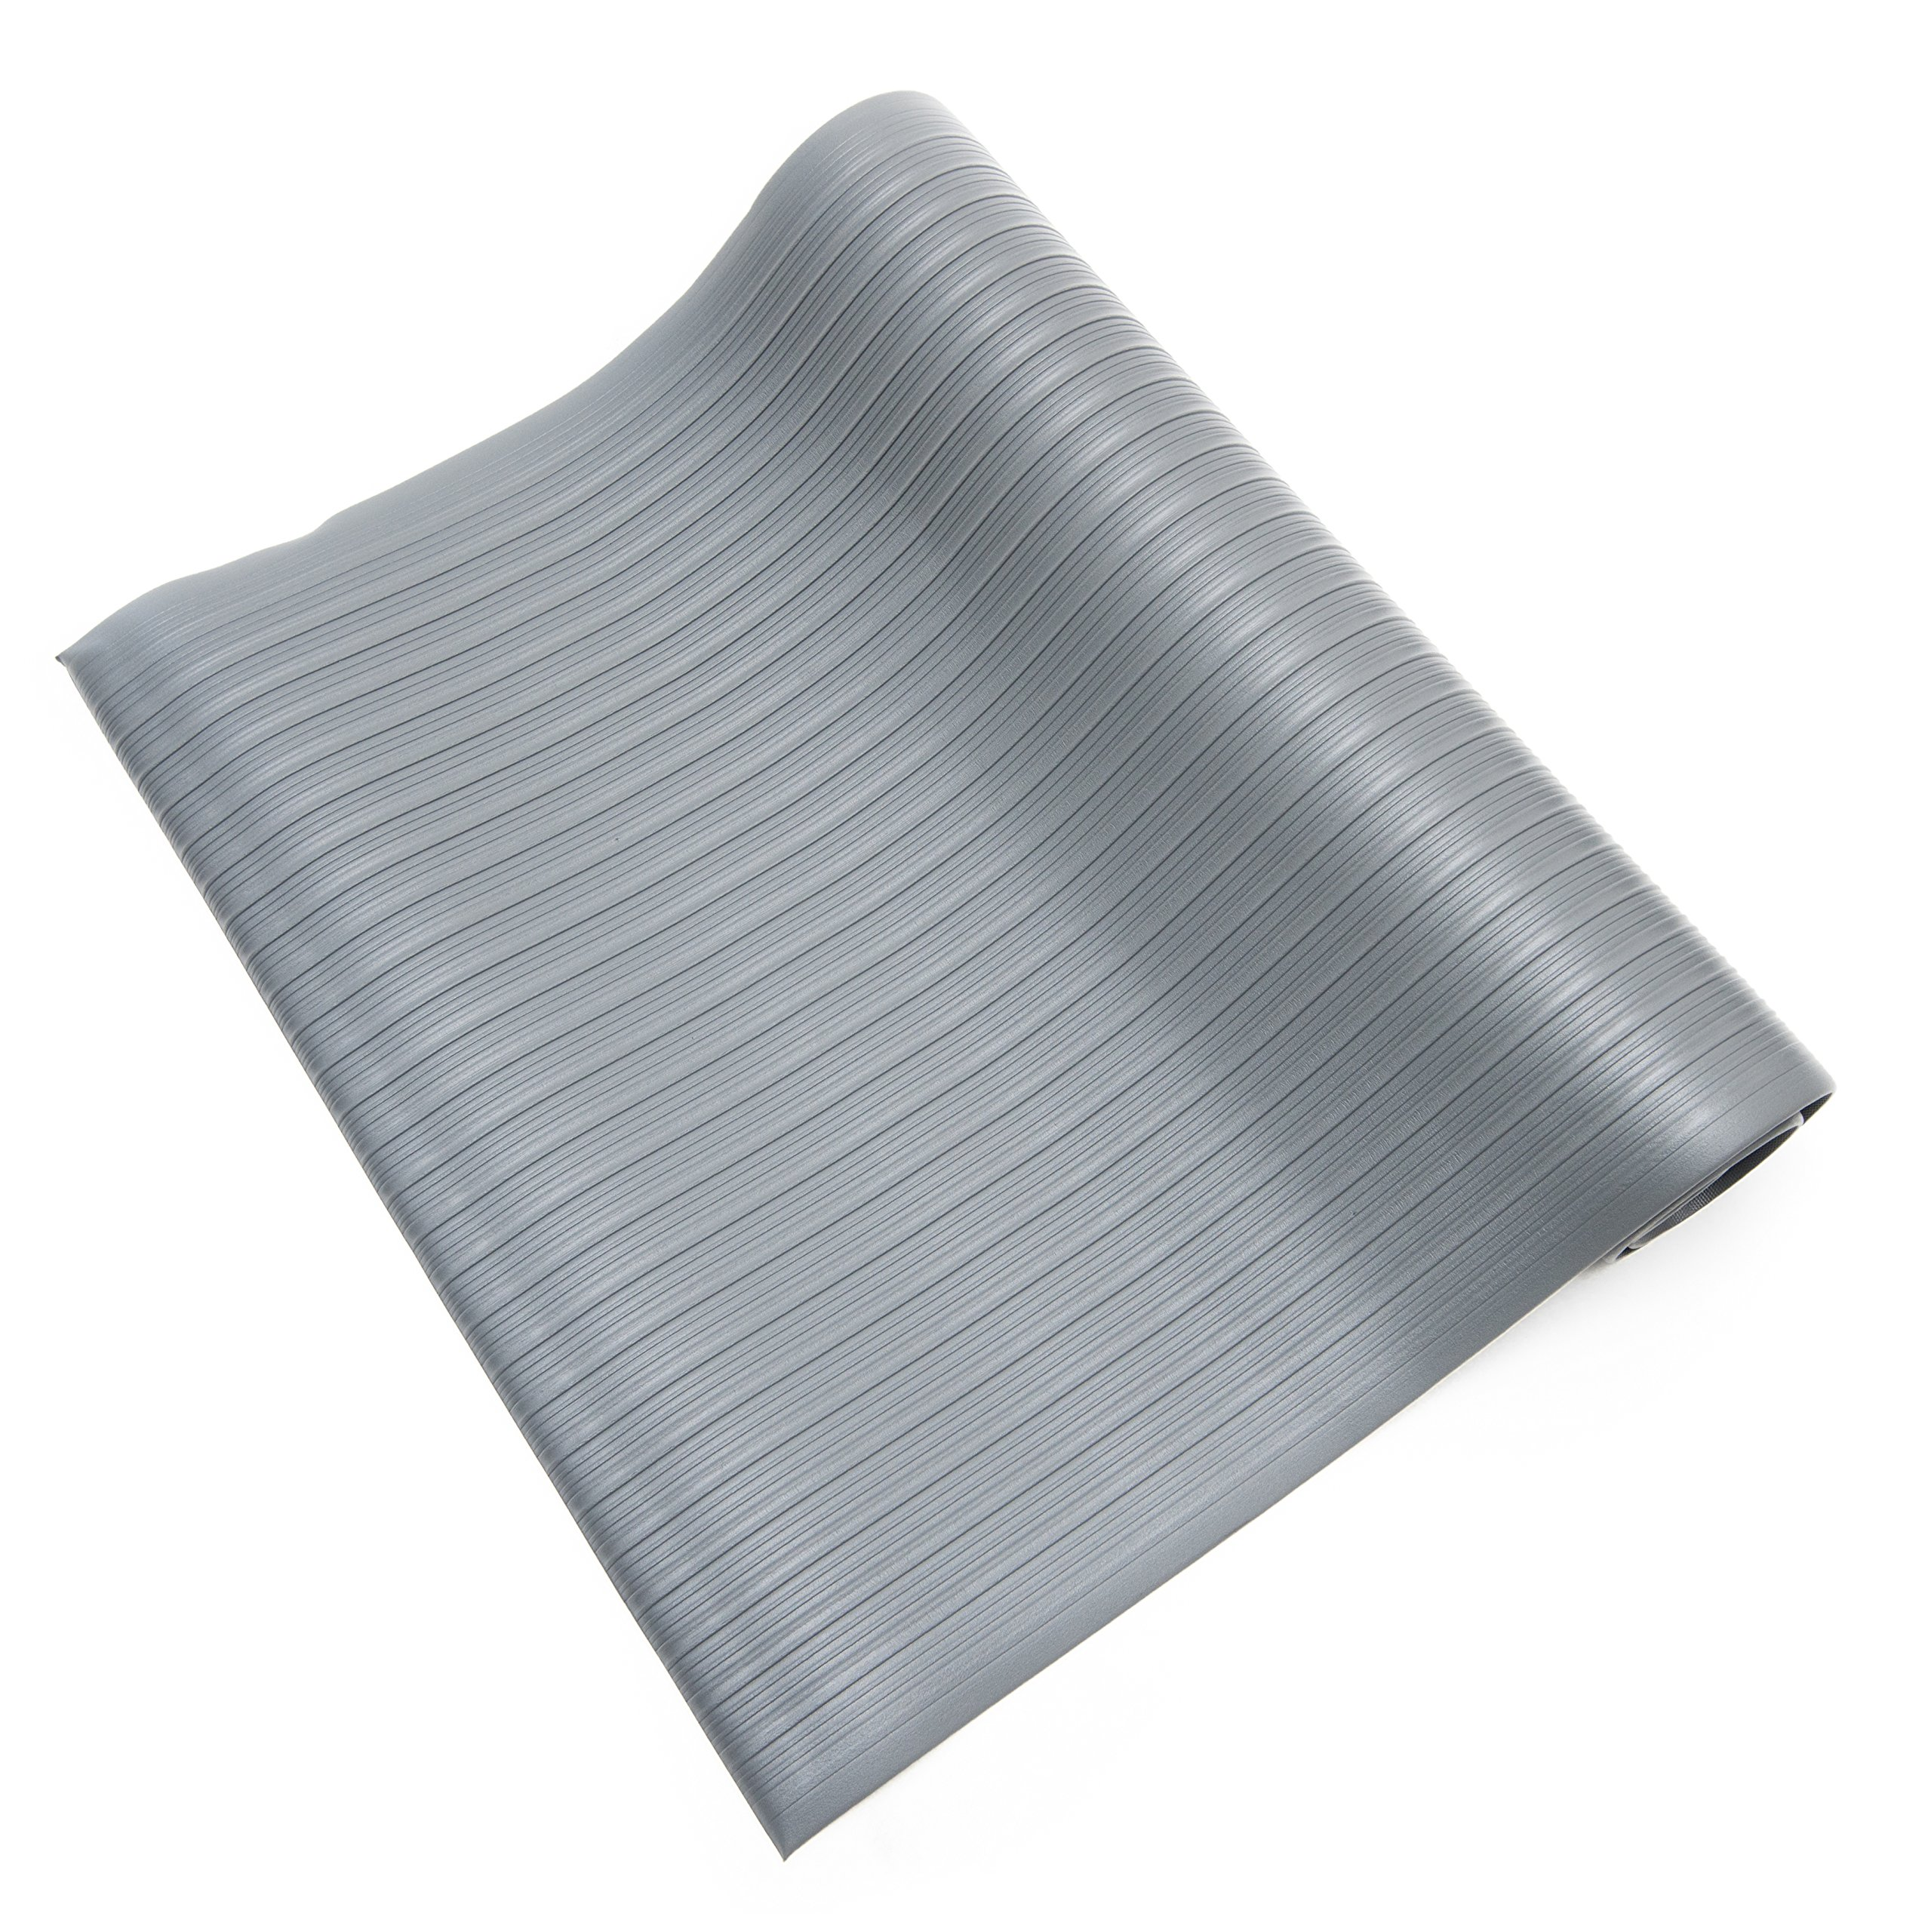 Bertech Anti Fatigue Vinyl Foam Floor Mat, 3' Wide x 5' Long x 3/8'' Thick, Ribbed Pattern, Gray, Bevelled on All Four Sides (Made in USA)